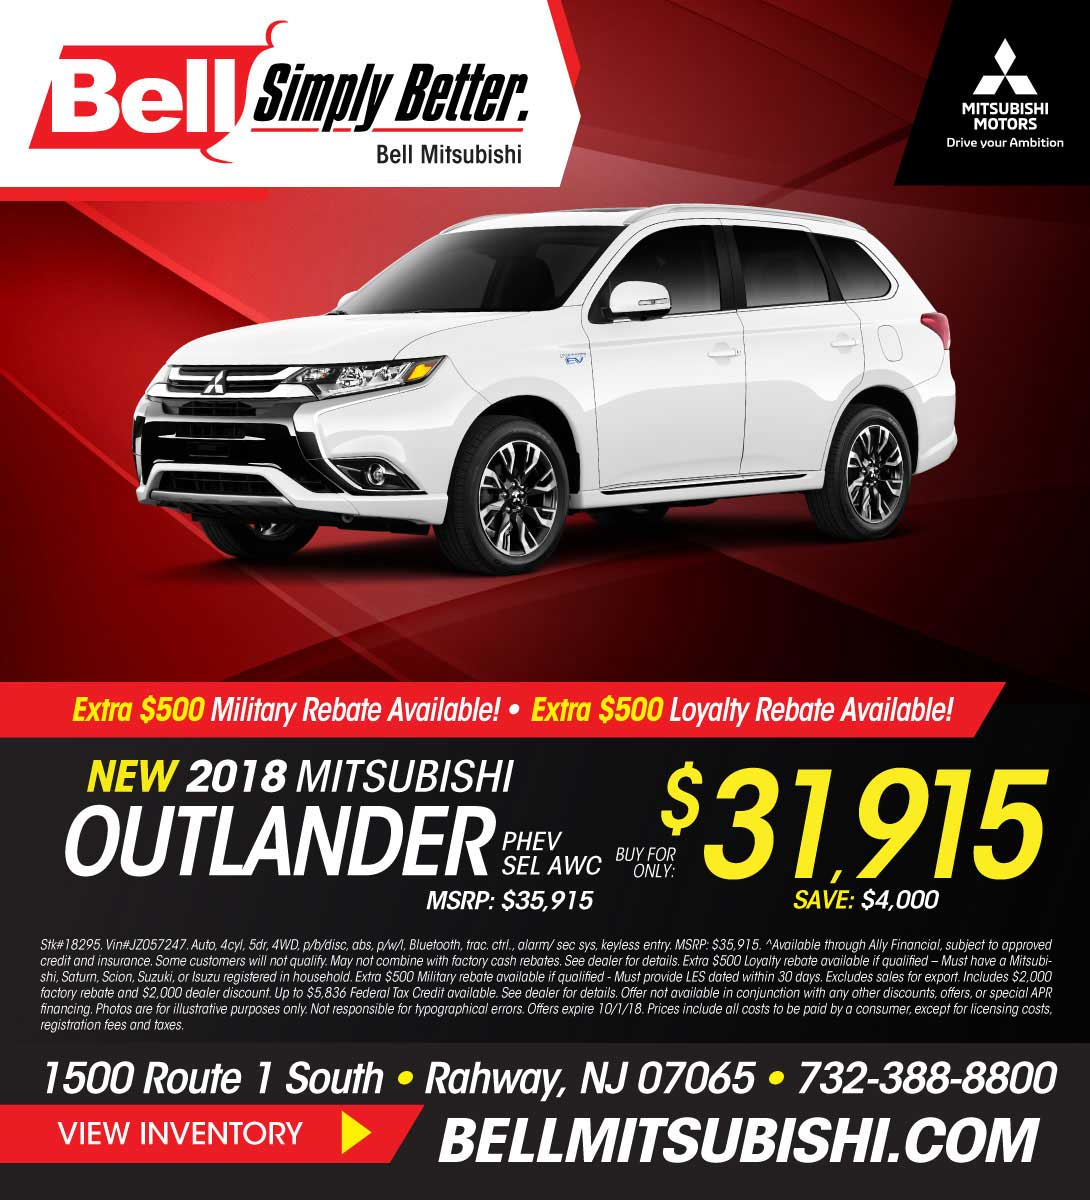 BLM-414-Landing-Pages_2018_OutlanderPHEV_SEL_Buy.jpg